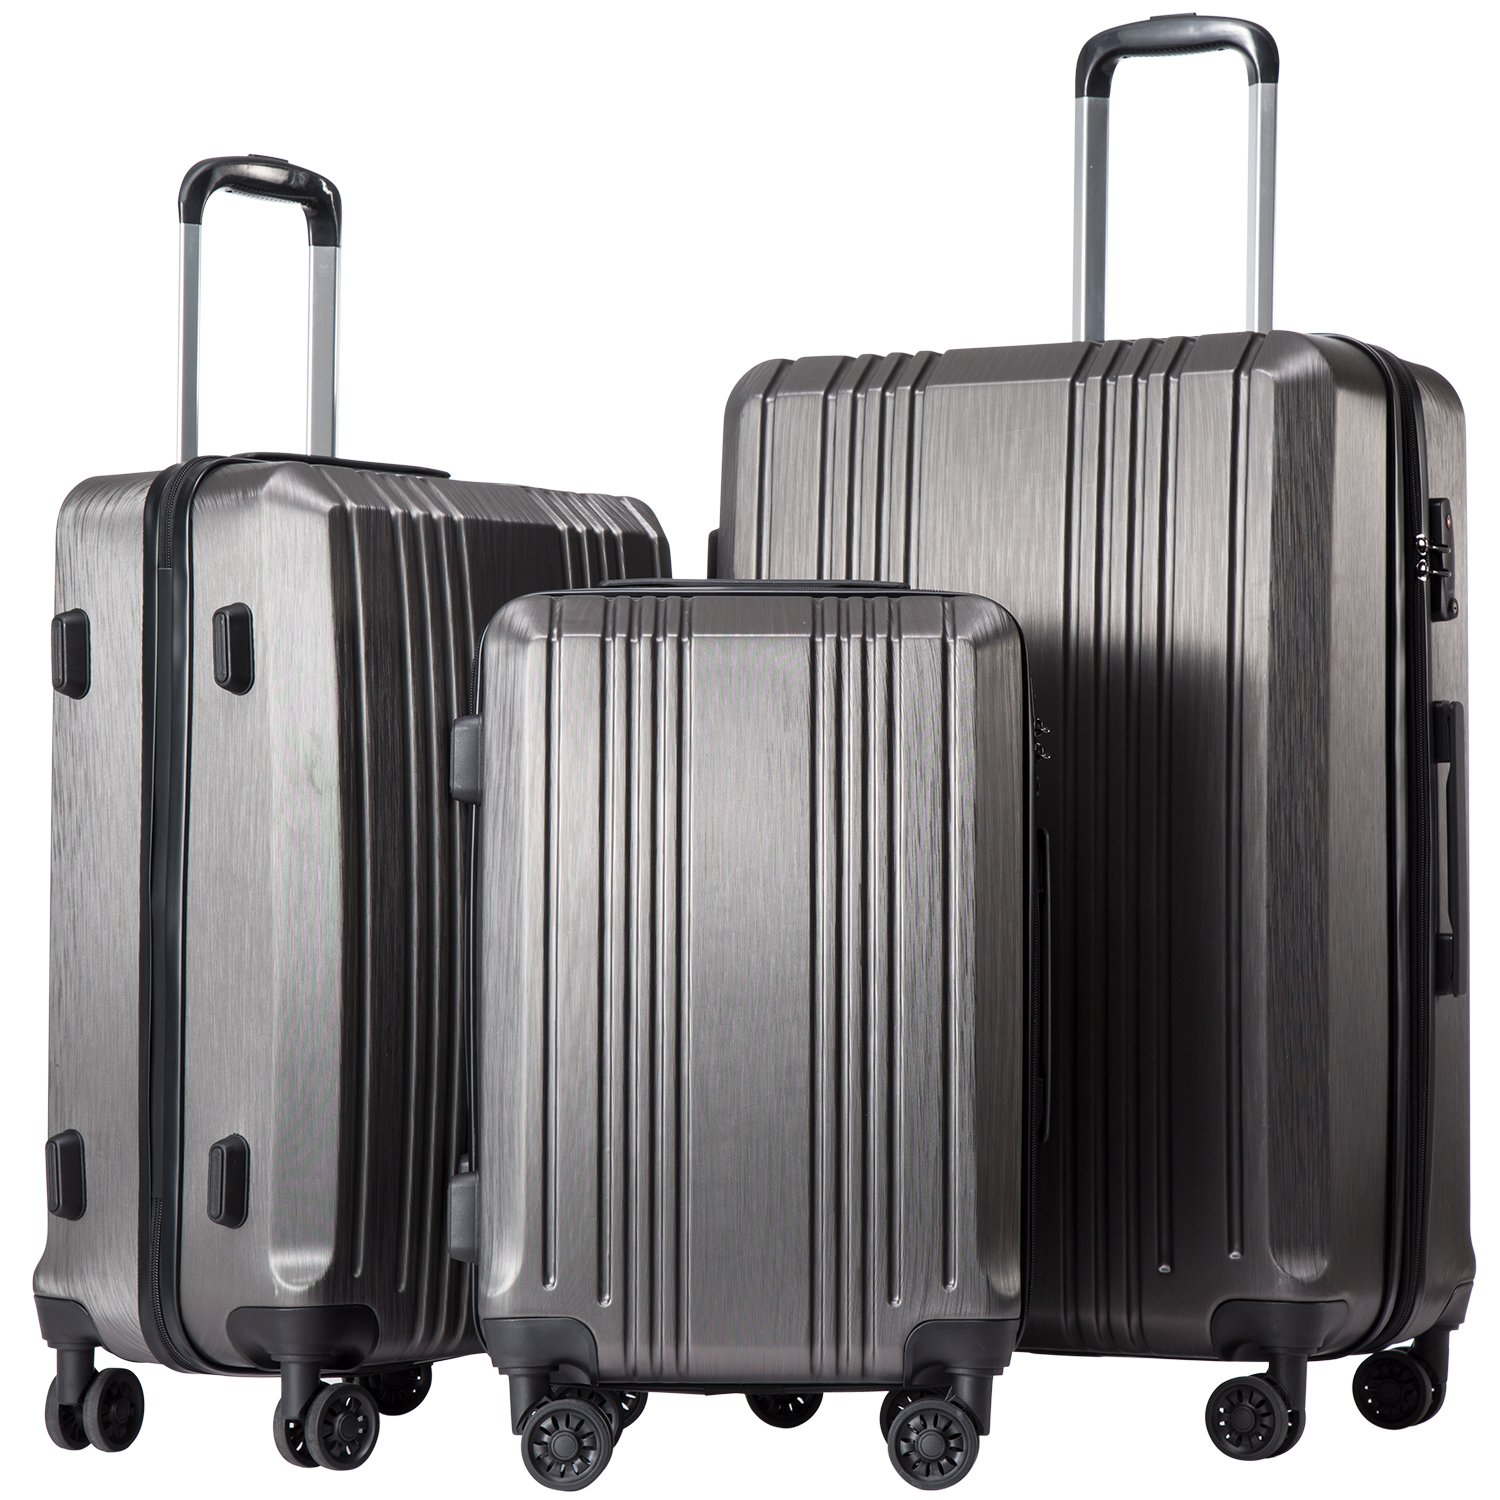 Coolife Luggage Expandable Suitcase 3 Piece Set with TSA Lock Spinner 20in24in28in (sliver gray3) by Coolife